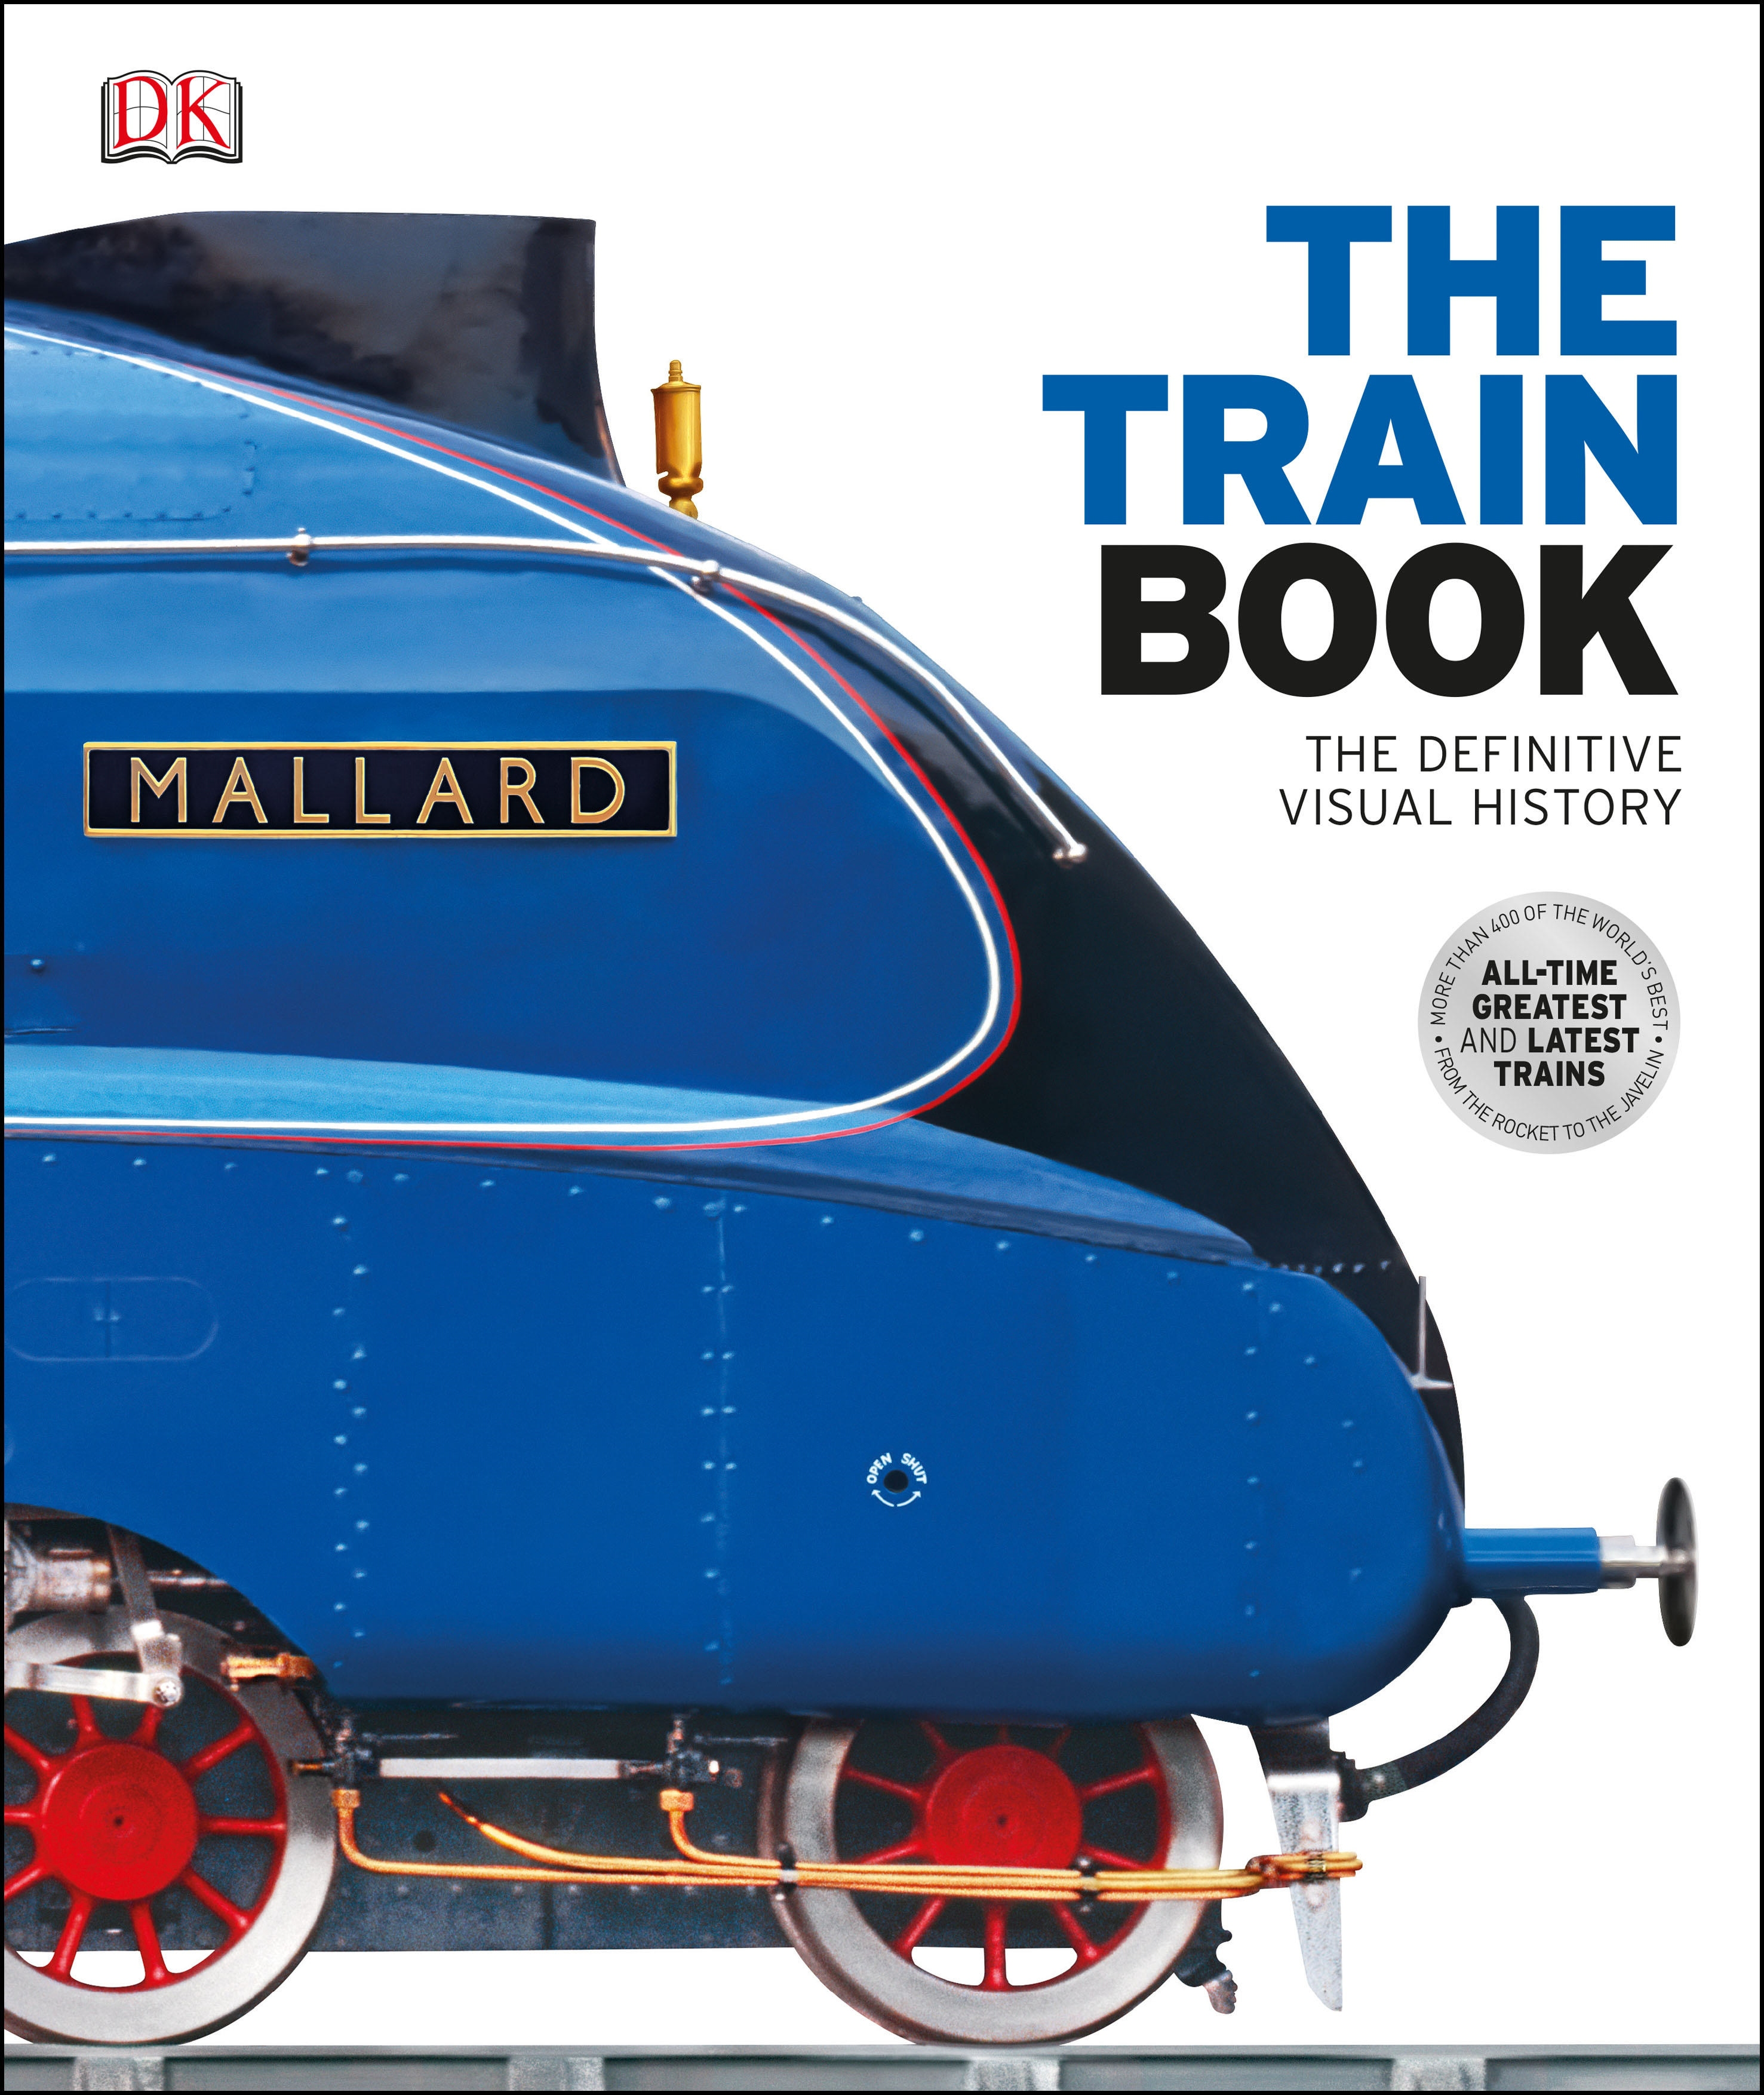 The Train Book: The Definitive Visual History (Dk) by Dorling Kindersley, ISBN: 9781409347965